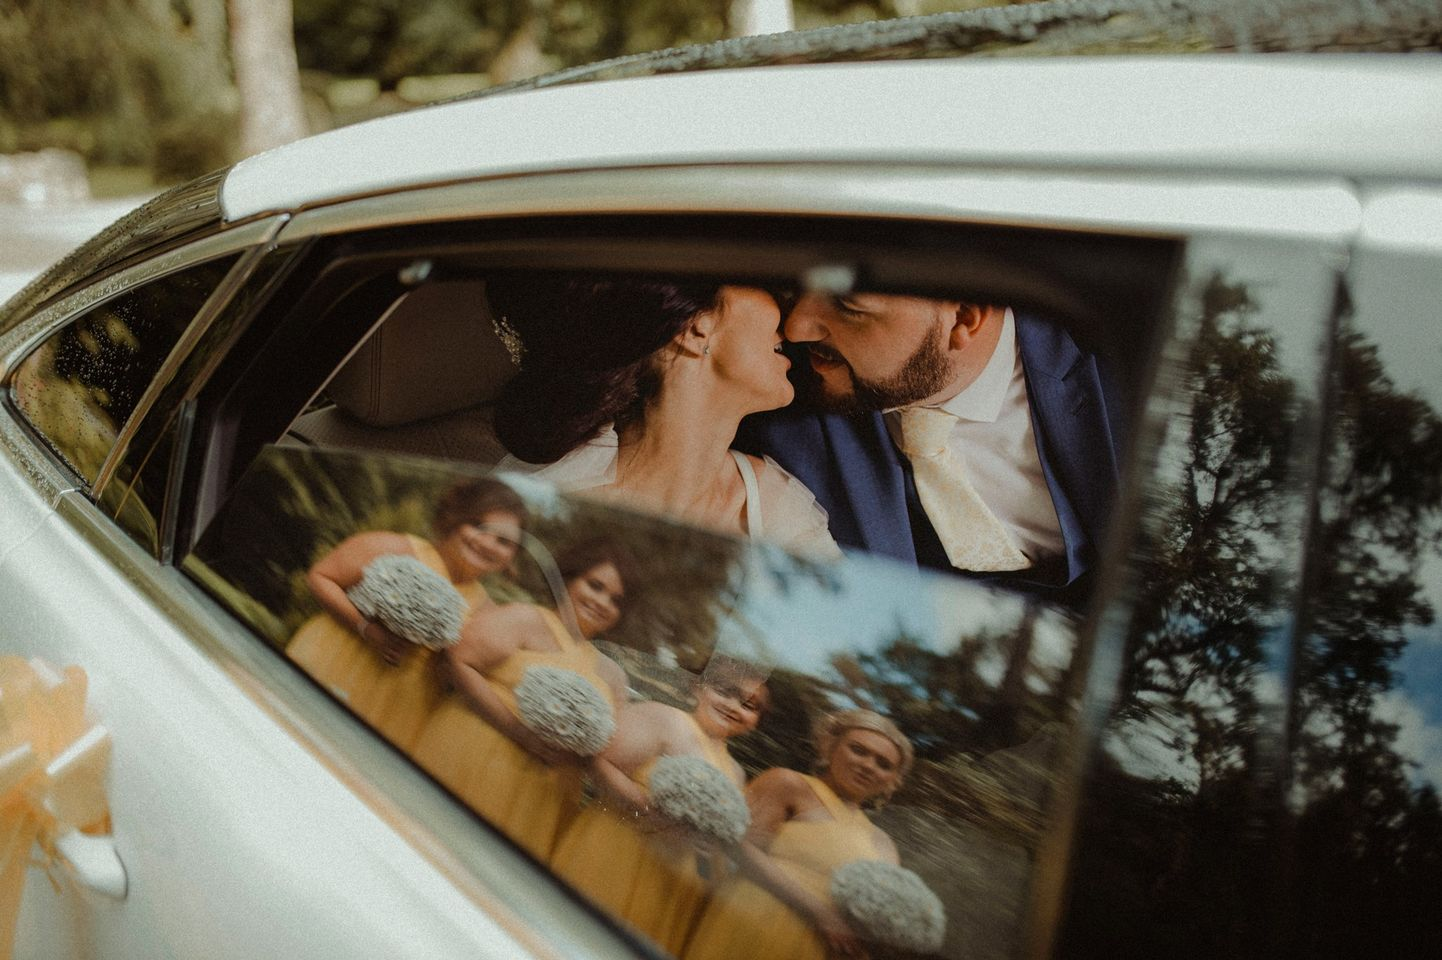 Bride and groom in the wedding car as bridesmaids are in the reflection of the car window| Romantic Autumn Wedding